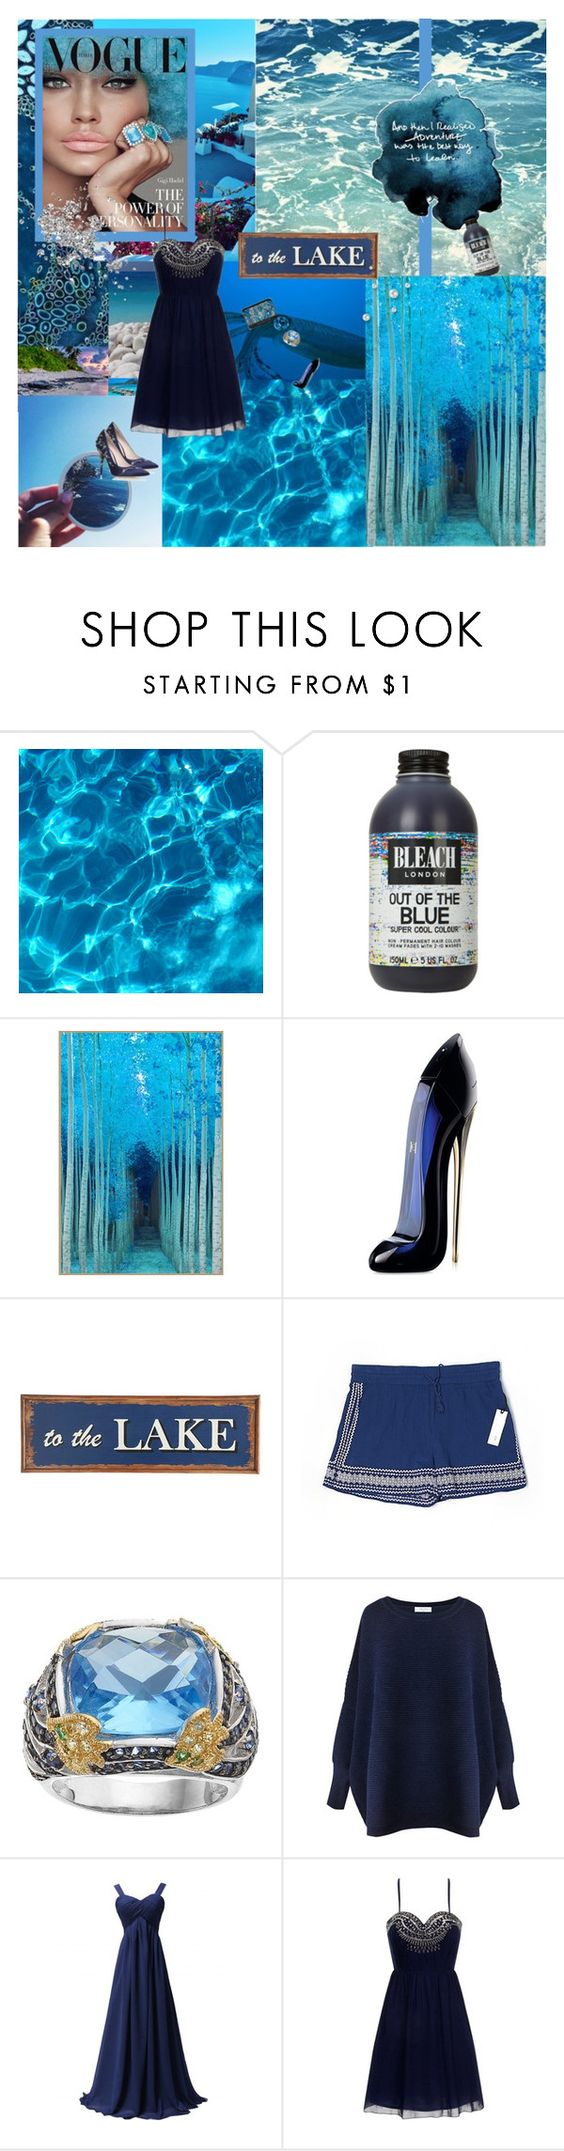 """""""Dress Like A Mermaid"""" by sml71402 ❤ liked on Polyvore featuring Bora Bora, Carolina Herrera, Pier 1 Imports, cupcakes and cashmere, SOPHIE MILLER, Paisie, Little Mistress, NARS Cosmetics, RALPH & RUSSO and Blue"""